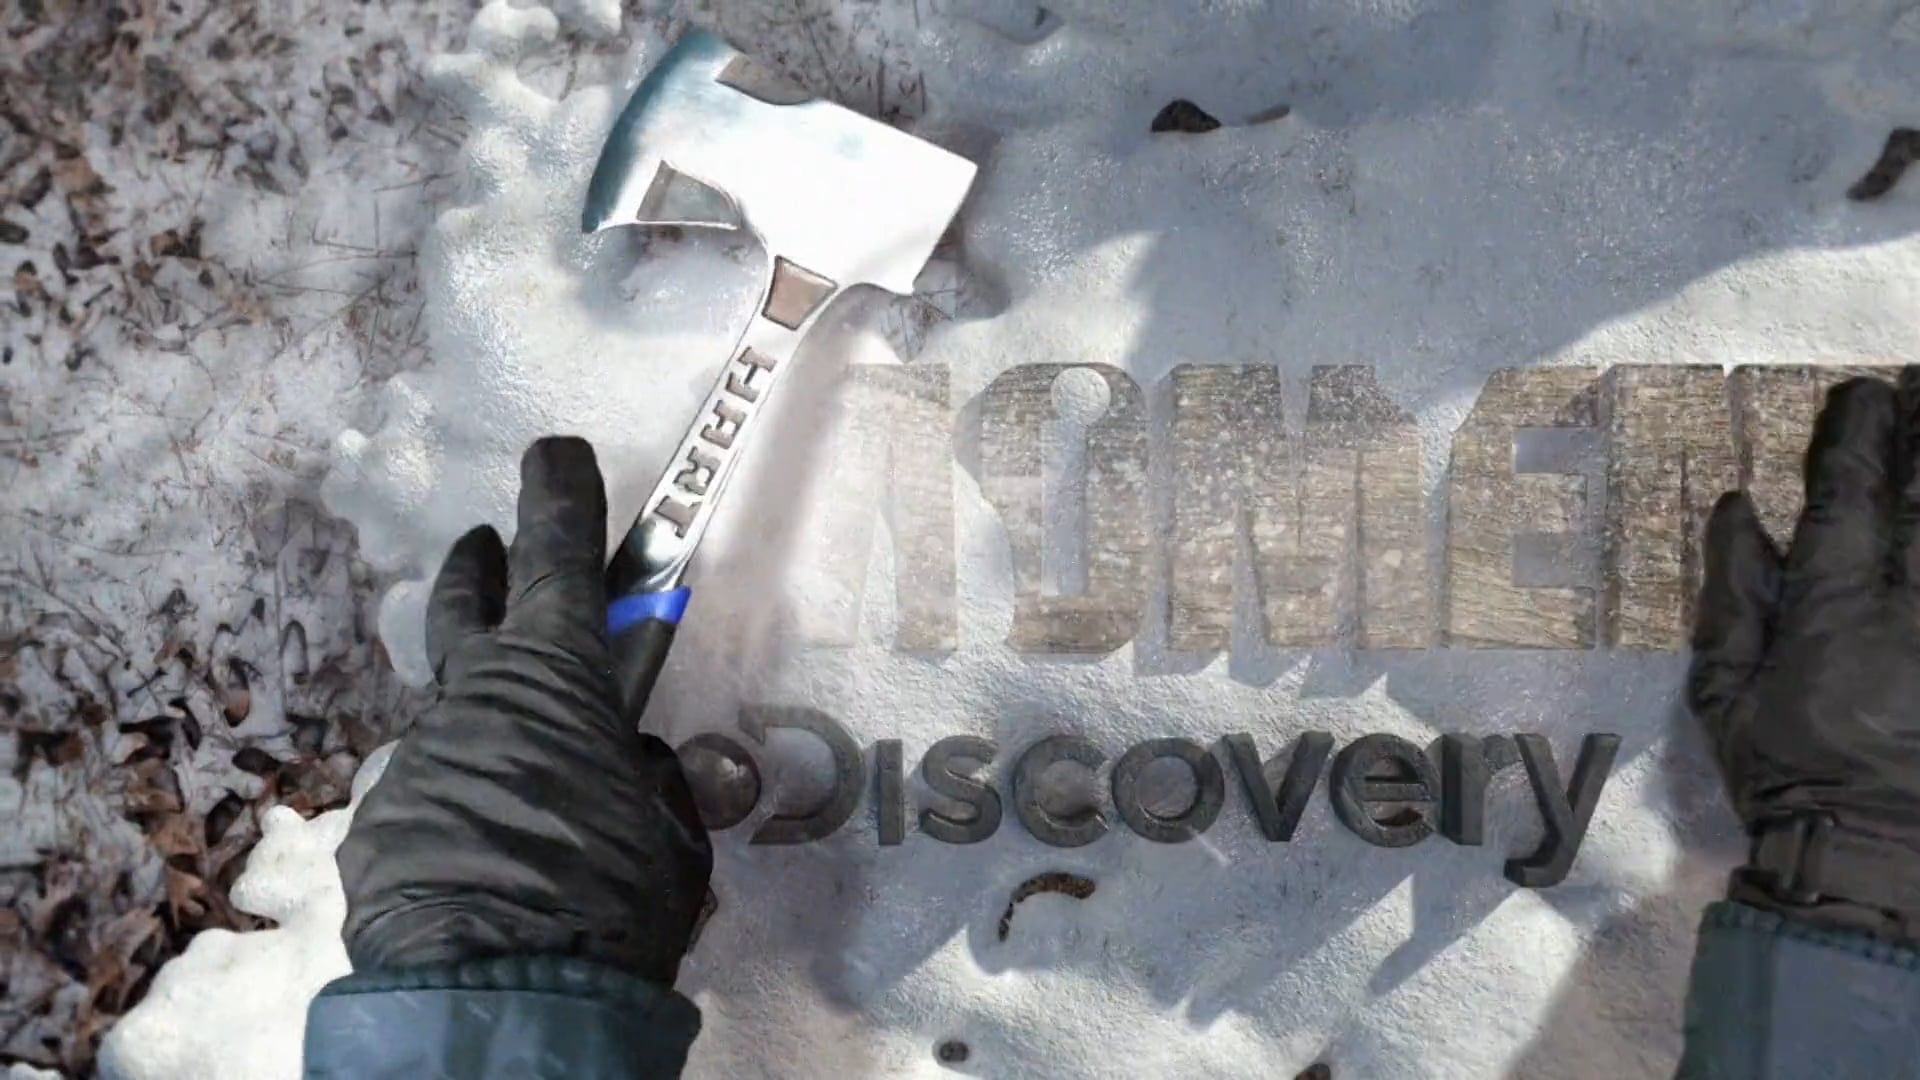 DISCOVERY CHANNEL – FILLER